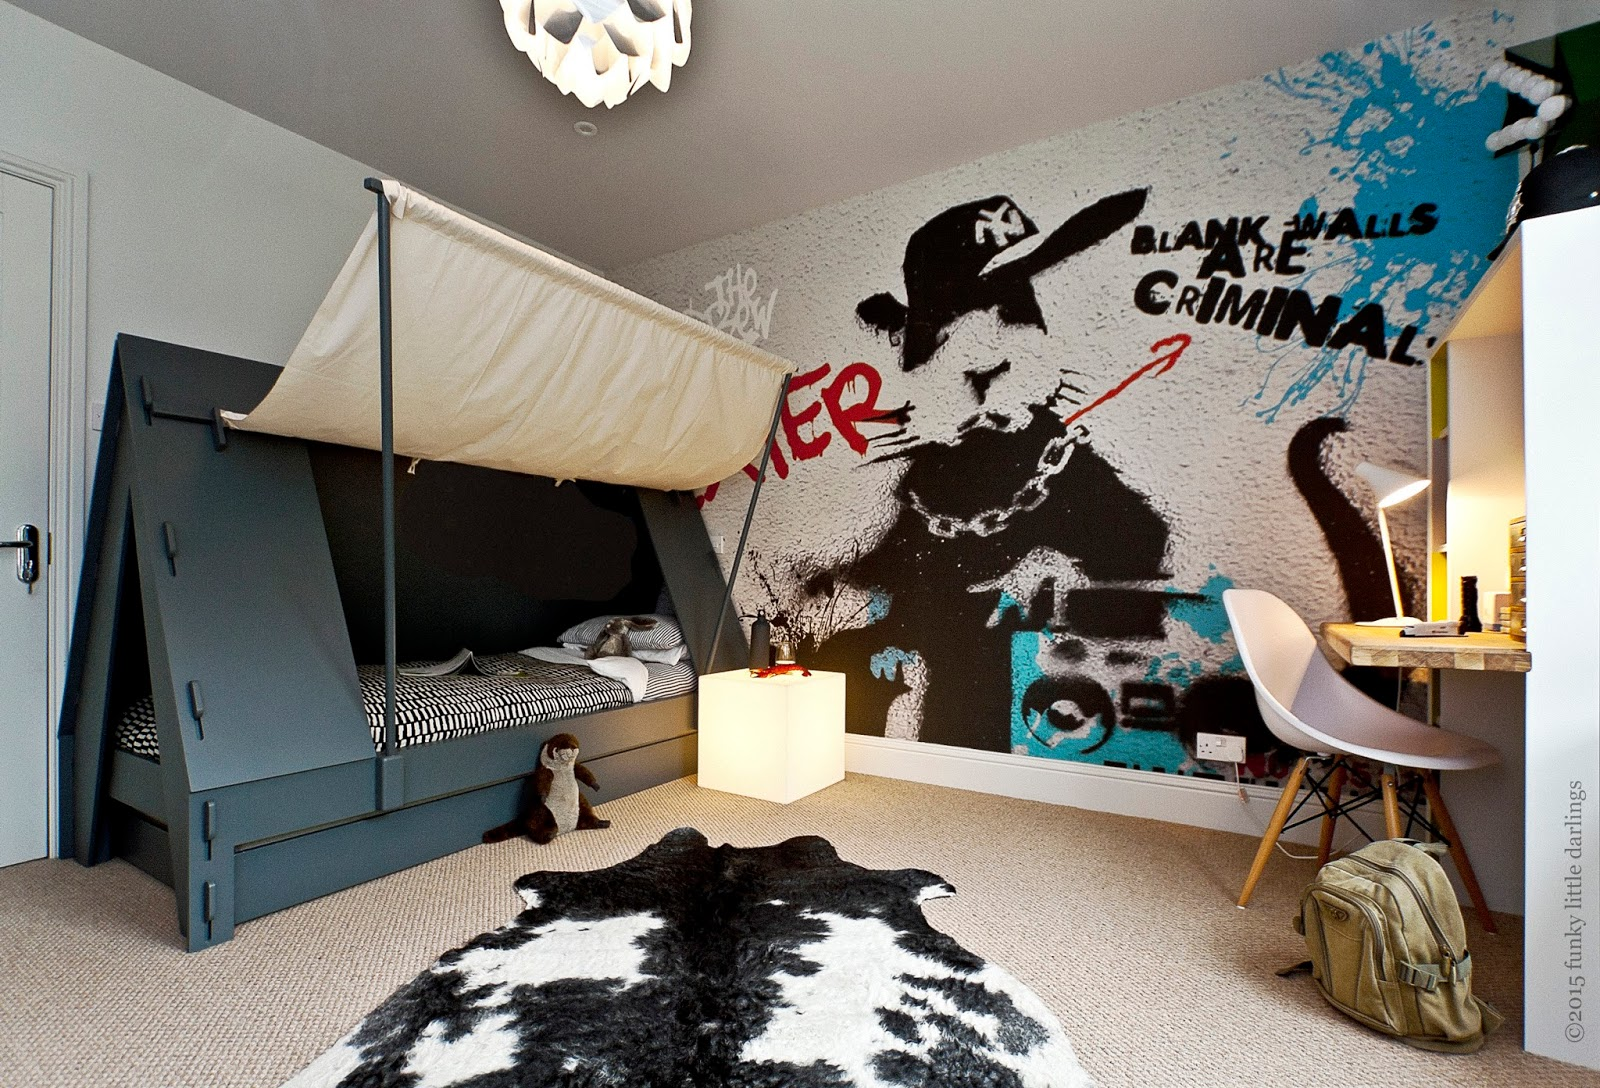 Tent Bed And Graffiti Wallpaper For Cool Boys Bedroom